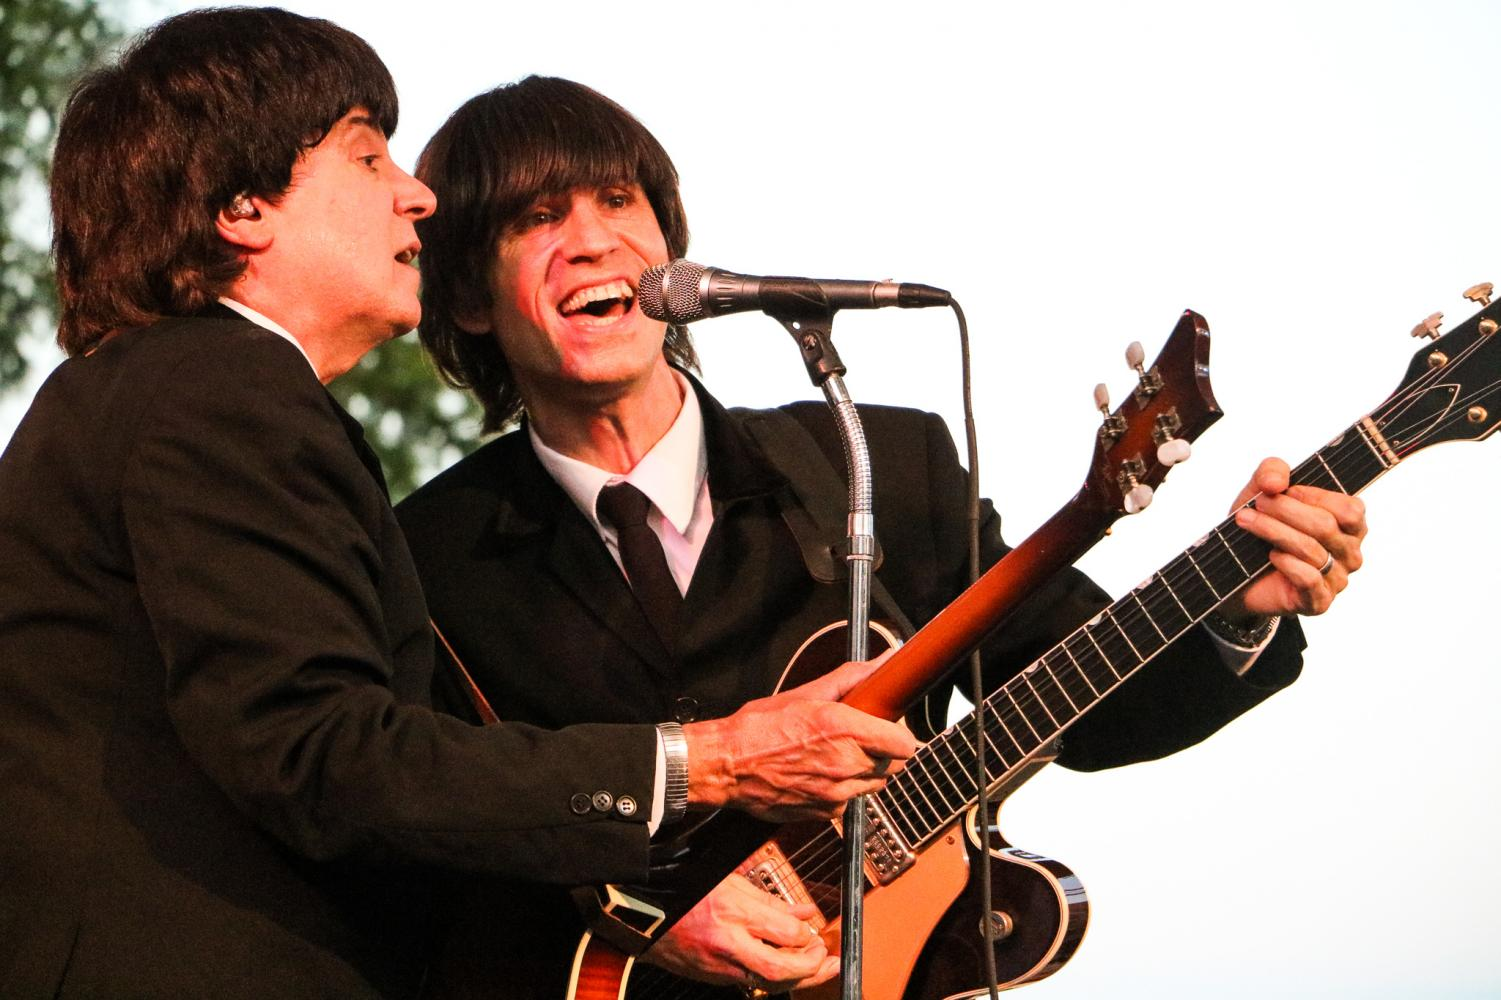 Photo by Alison Pfaff: Eric Michaels (left) (as Paul McCartney) and James Paul Lynch (right) (as George Harrison) of American English. The band uses vintage equipment like Michaels' Hofner Beatle bass and Vox amps to get that classic Beatle sound.